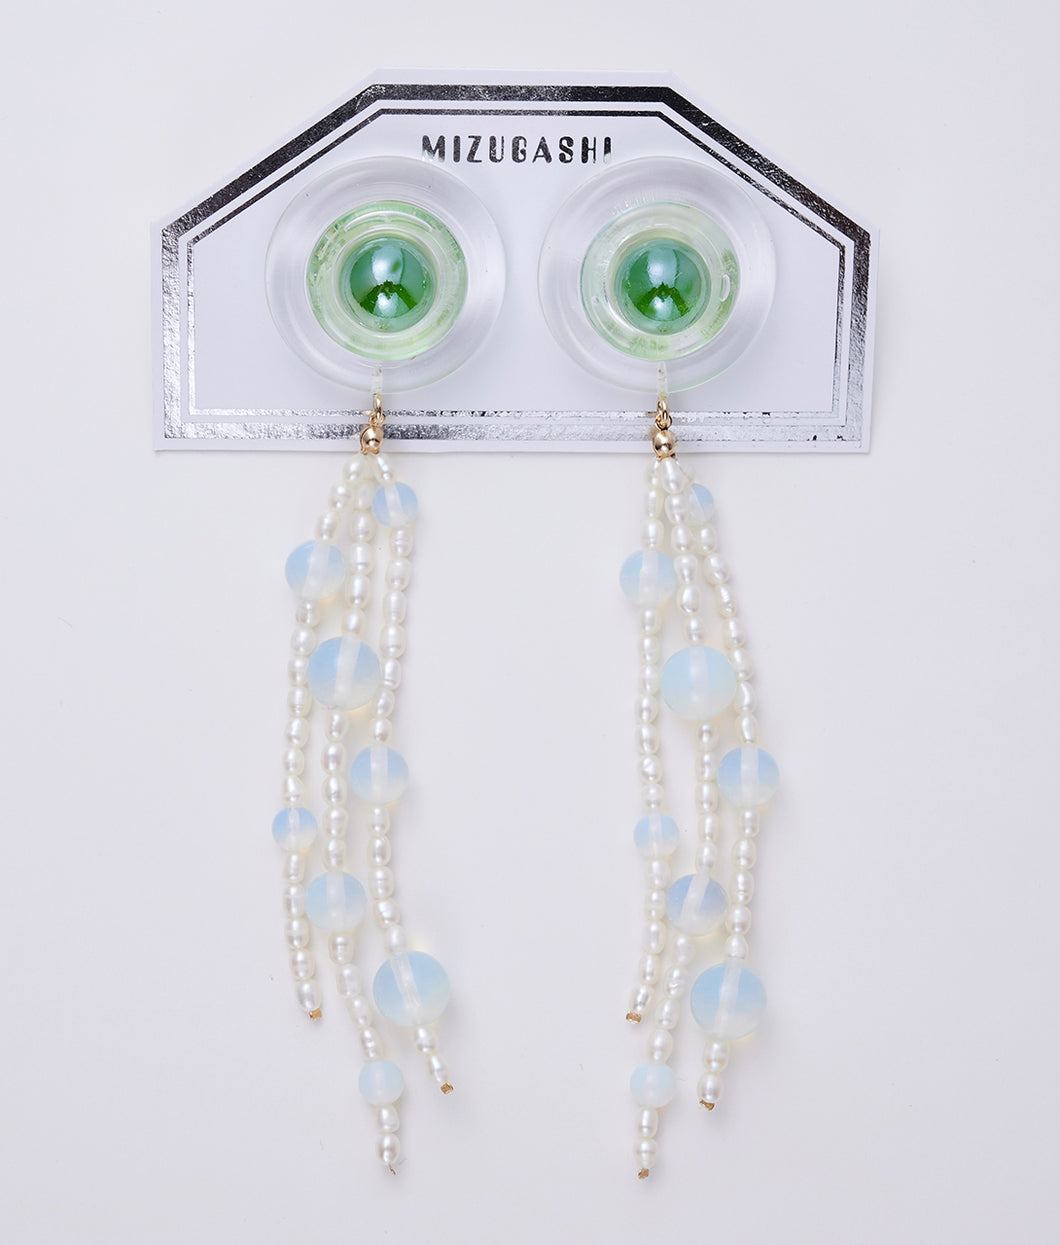 〈MIZUGASHI〉EARRINGS PEARL /イヤリングパール(GREEN)